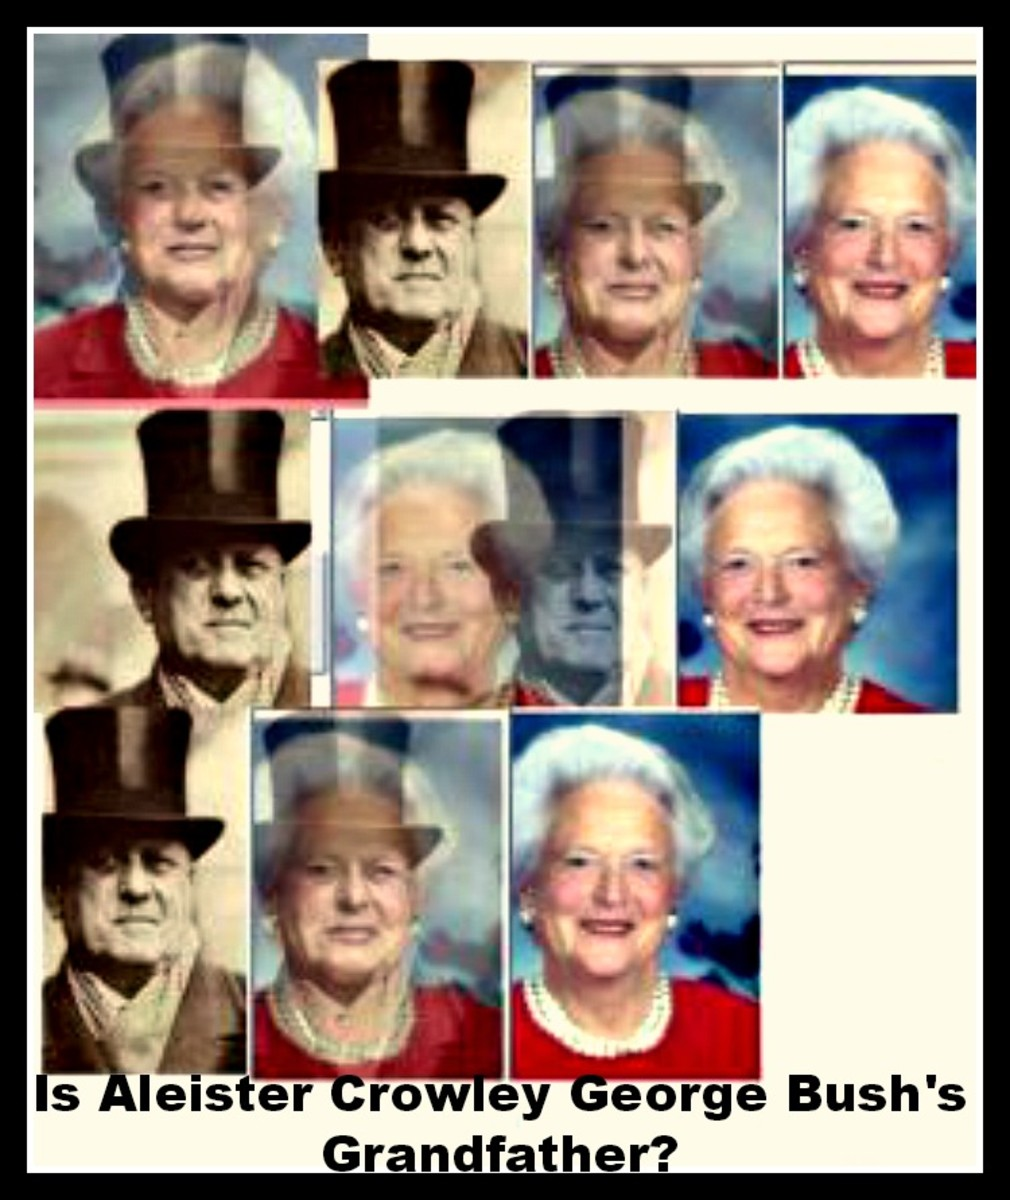 Is Aleister Crowley George Bush's Grandfather?